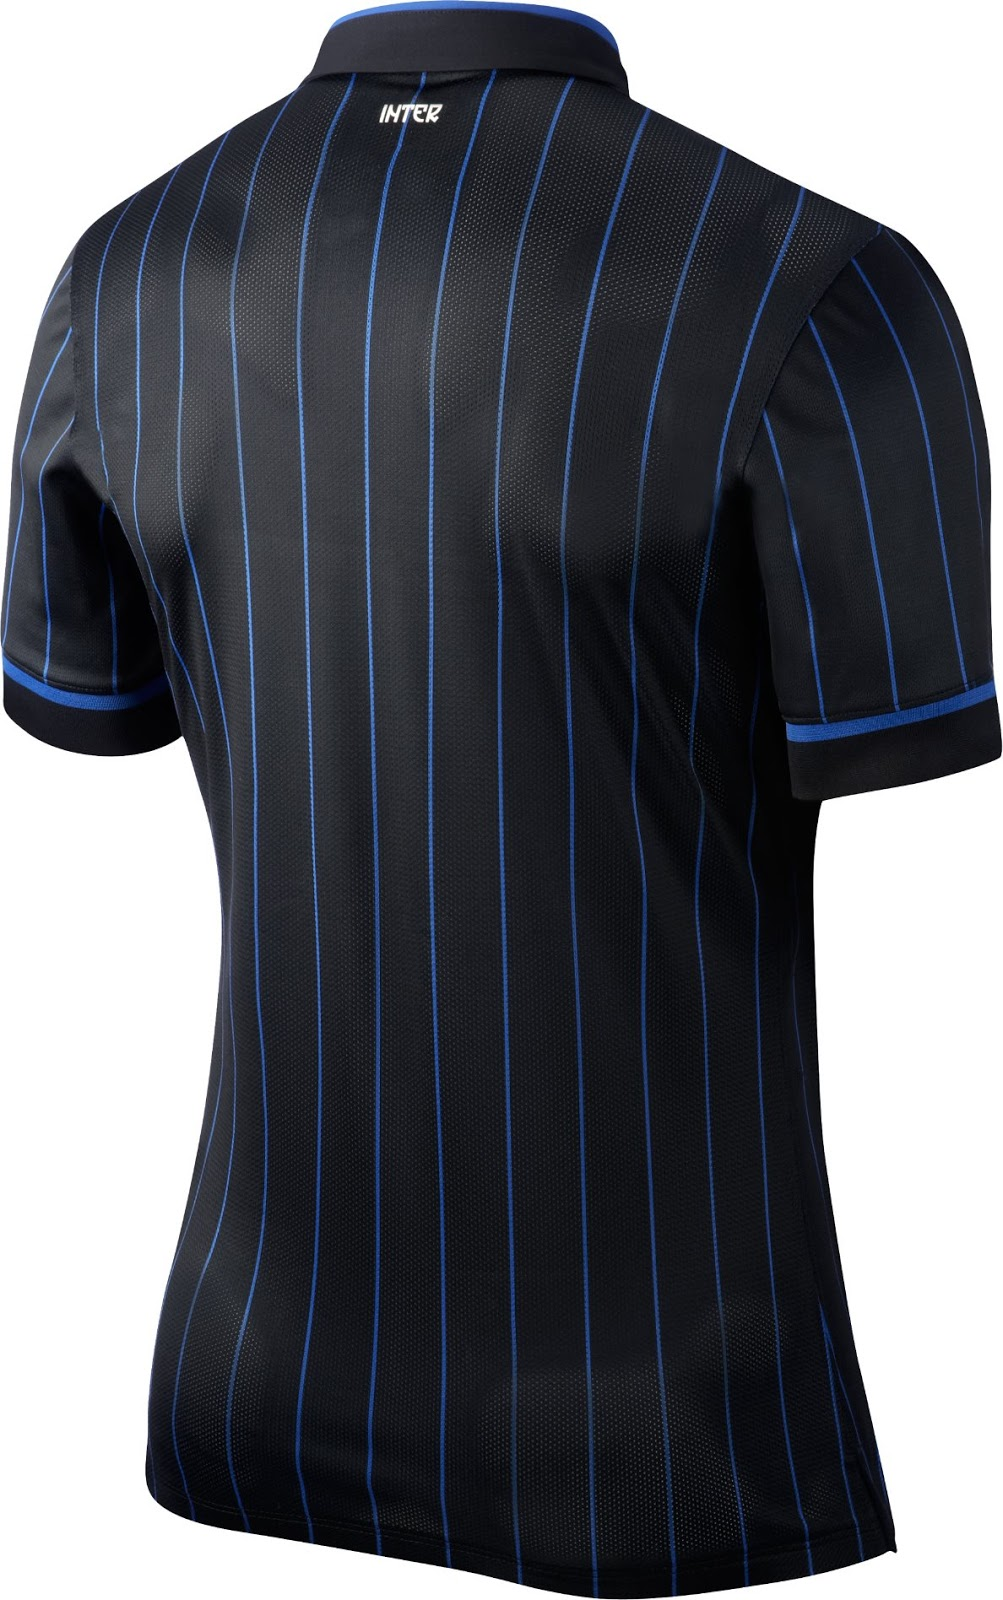 Nike-Inter-14-15-Home-Kit (2)